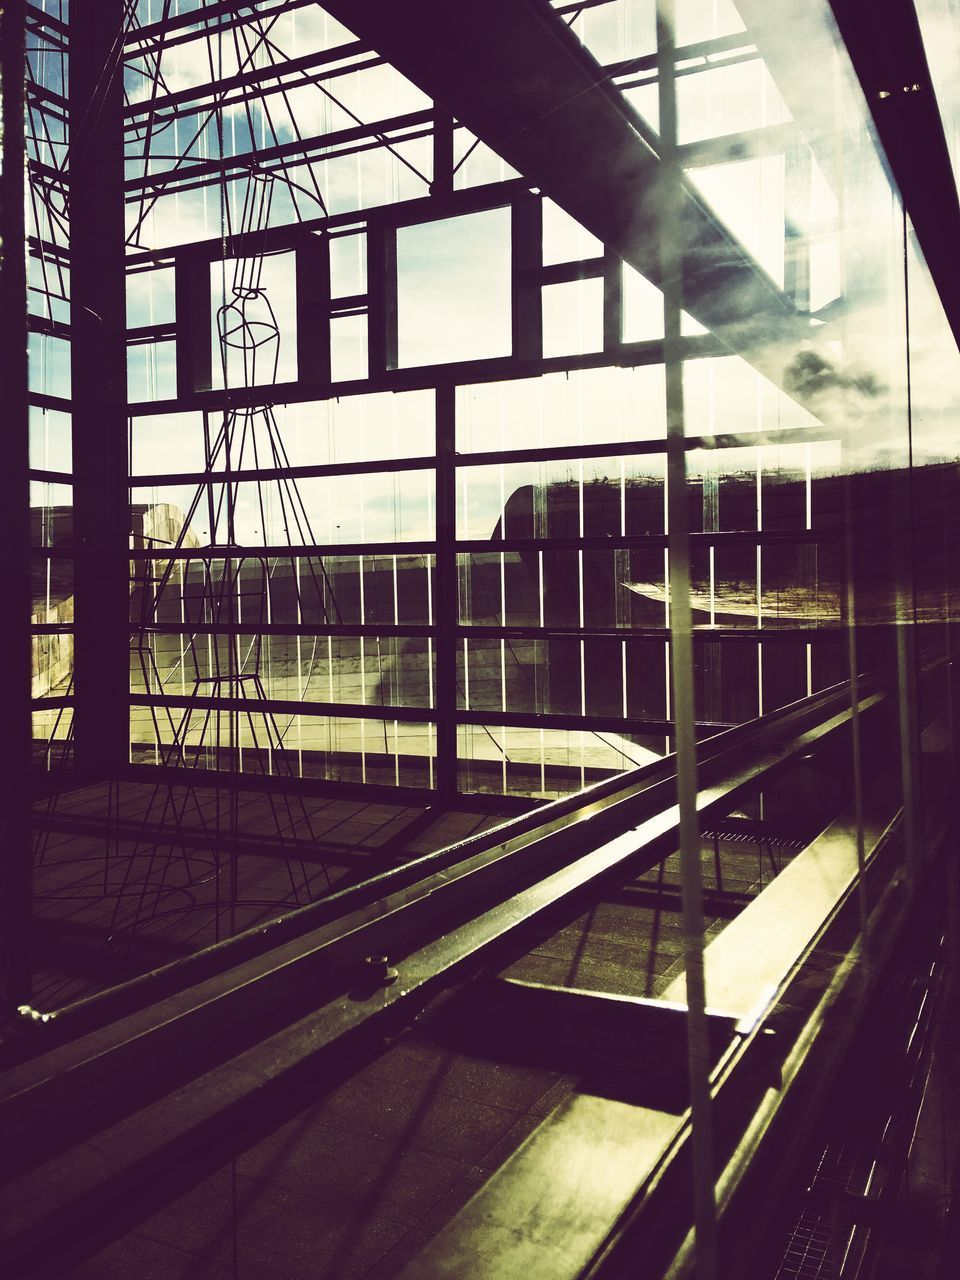 indoors, window, built structure, architecture, day, no people, building exterior, close-up, sky